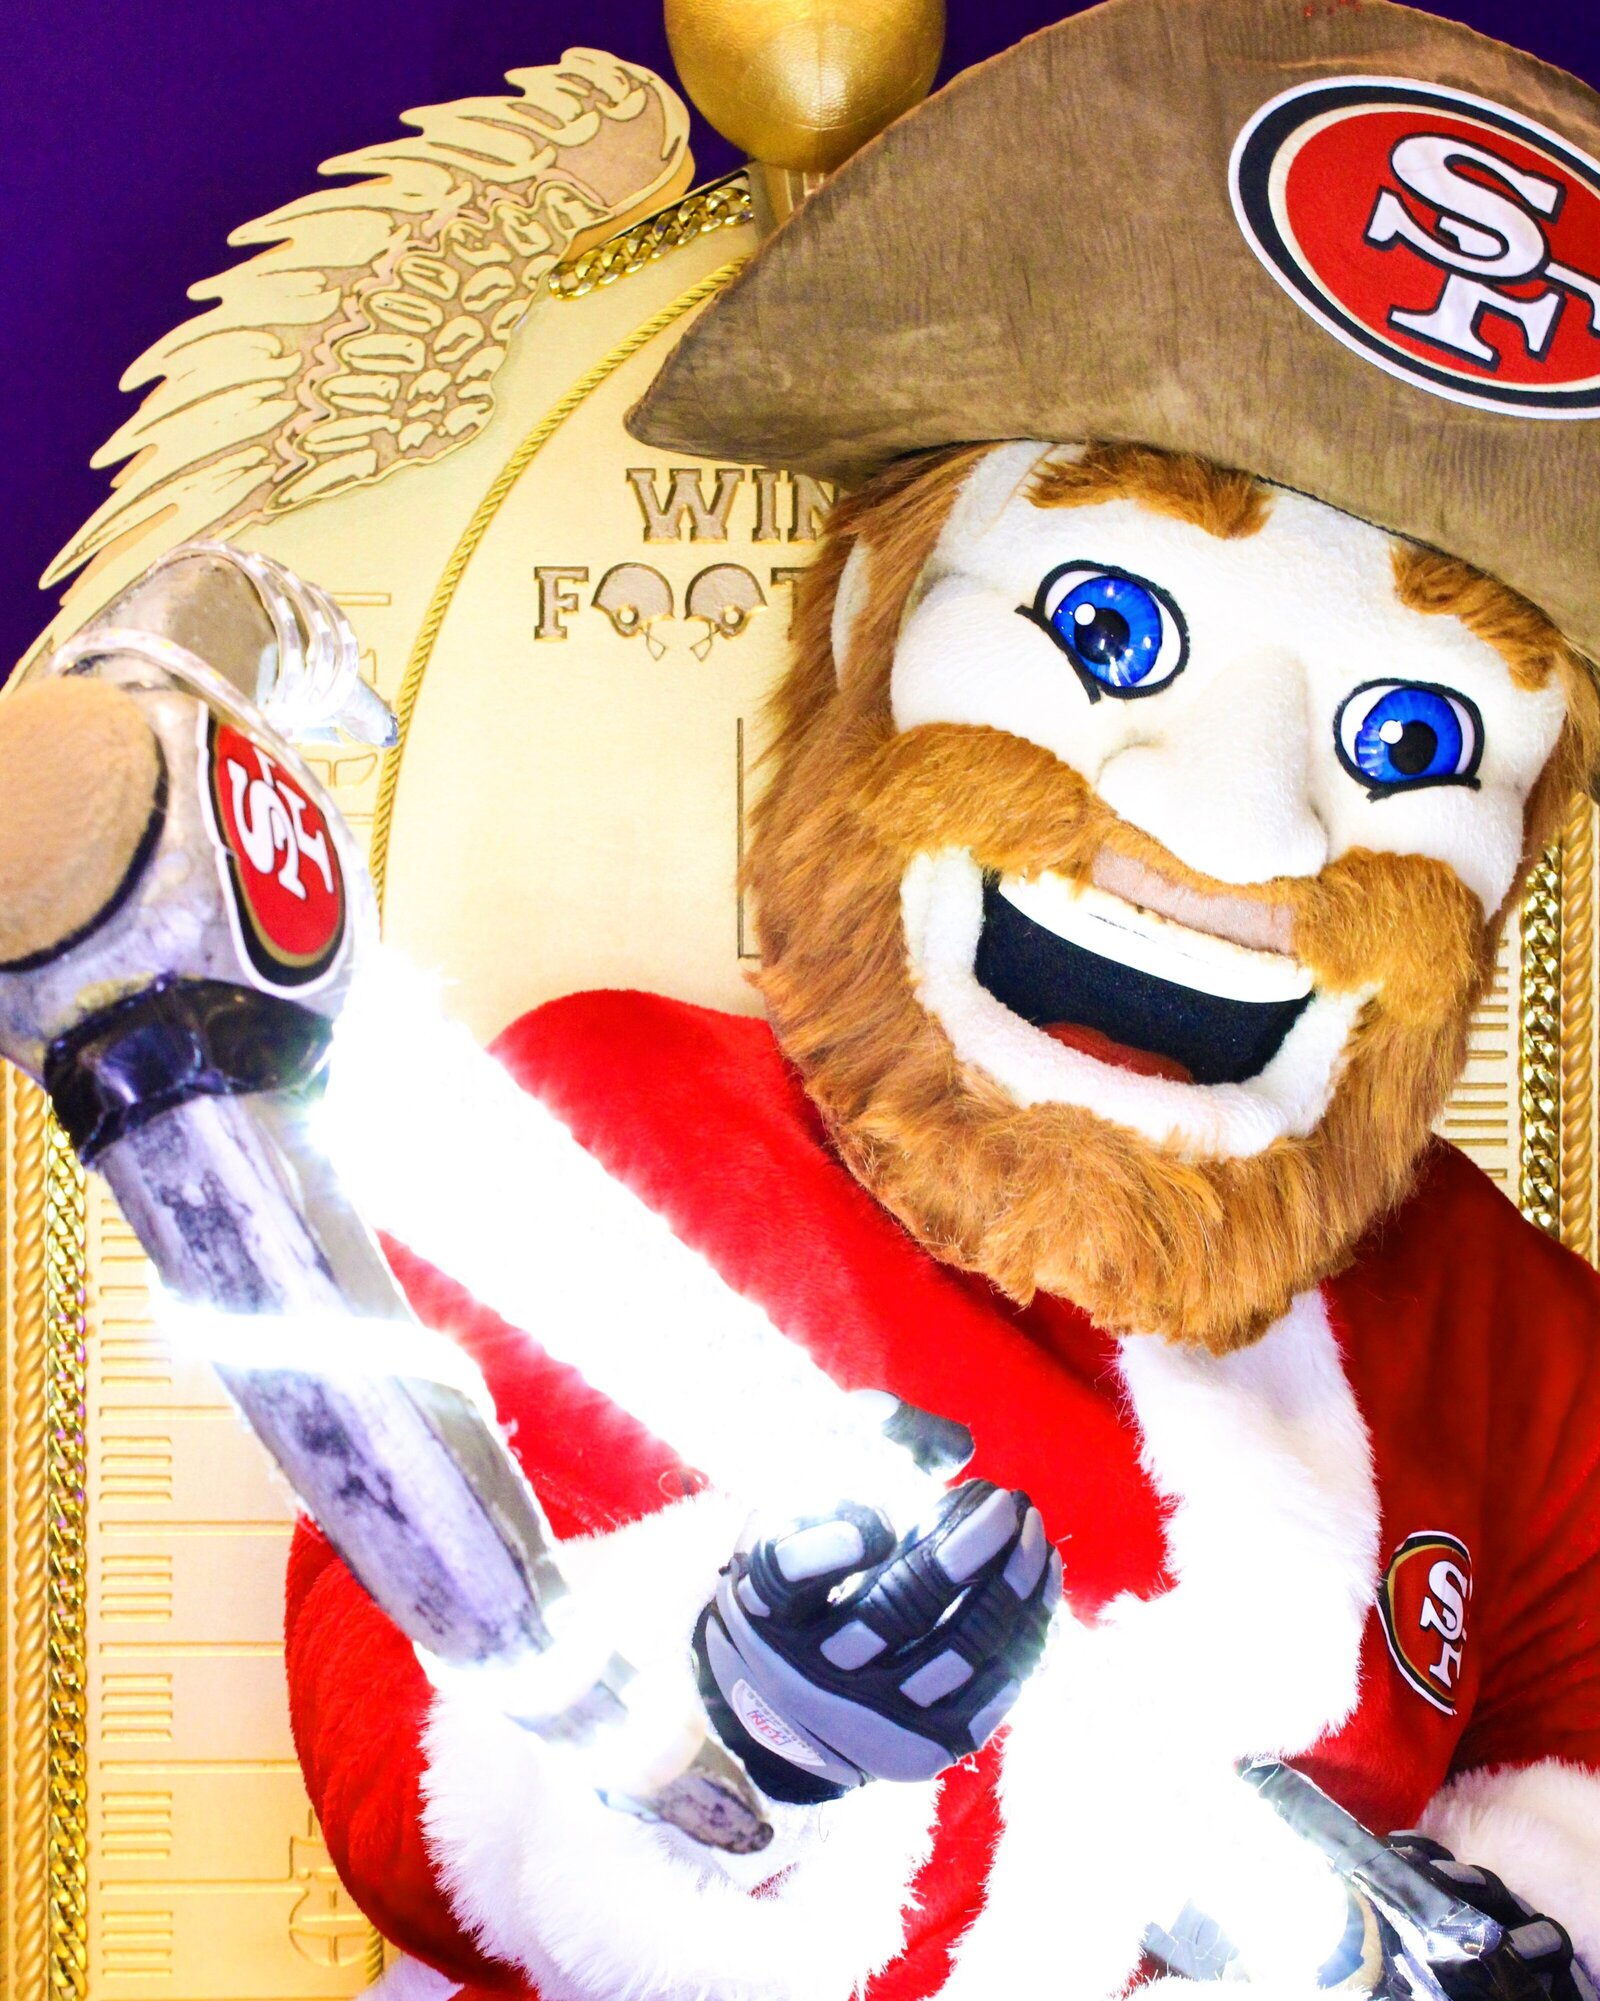 LOS GATOS DJ - SF 49ers Levi's Stadium Photobooth - LOS GATOS PHOTO BOOTH corporate event party